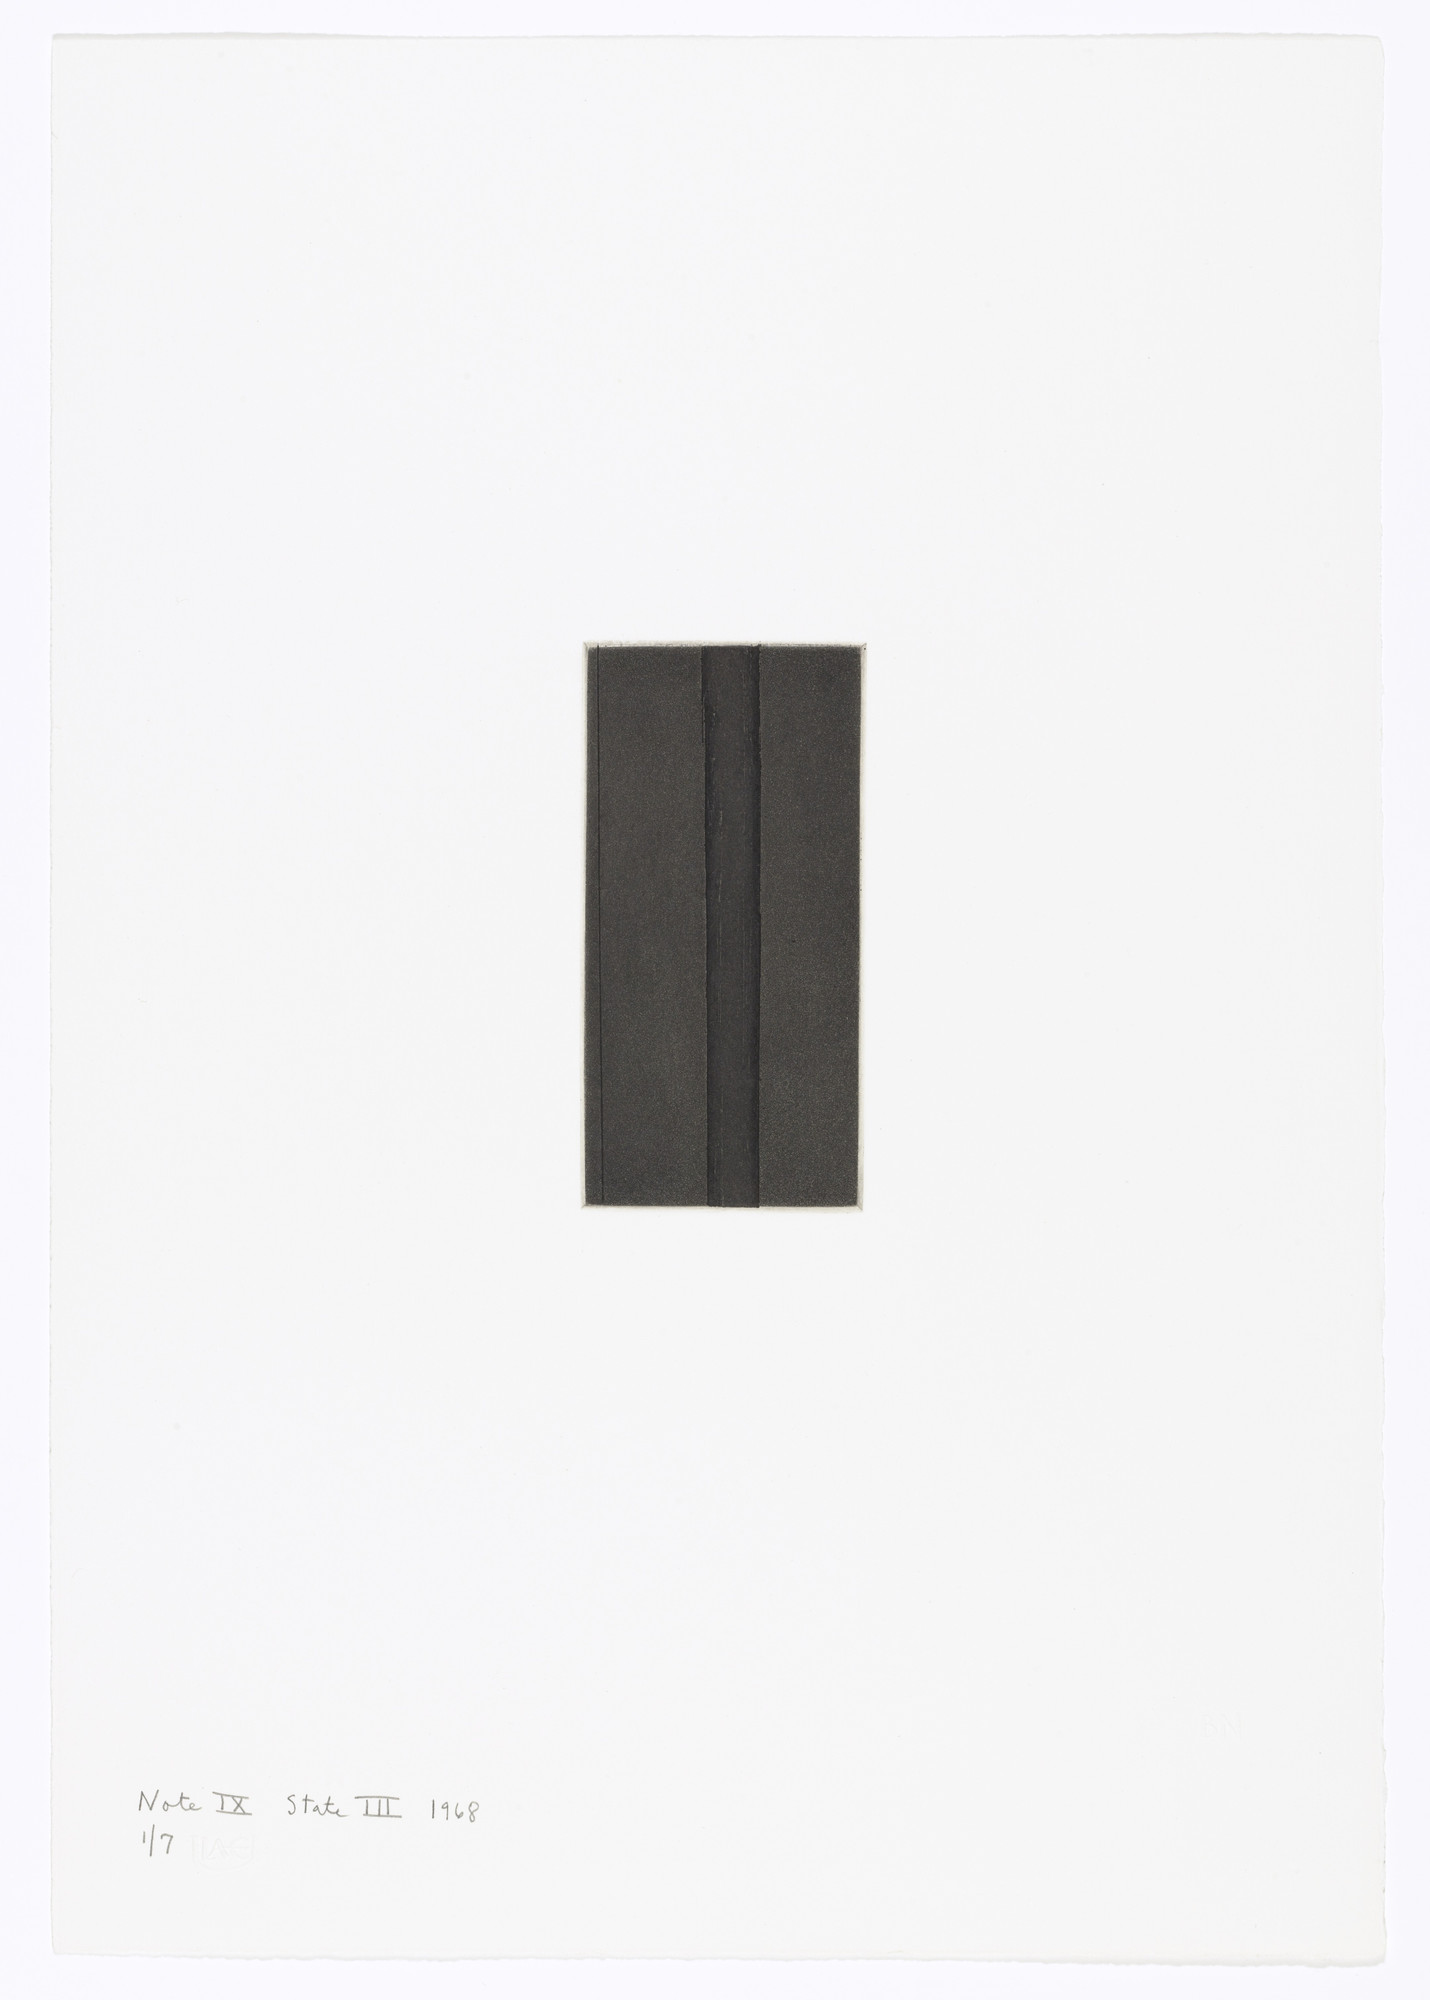 Barnett Newman. Note IX (State III) from Notes. 1968